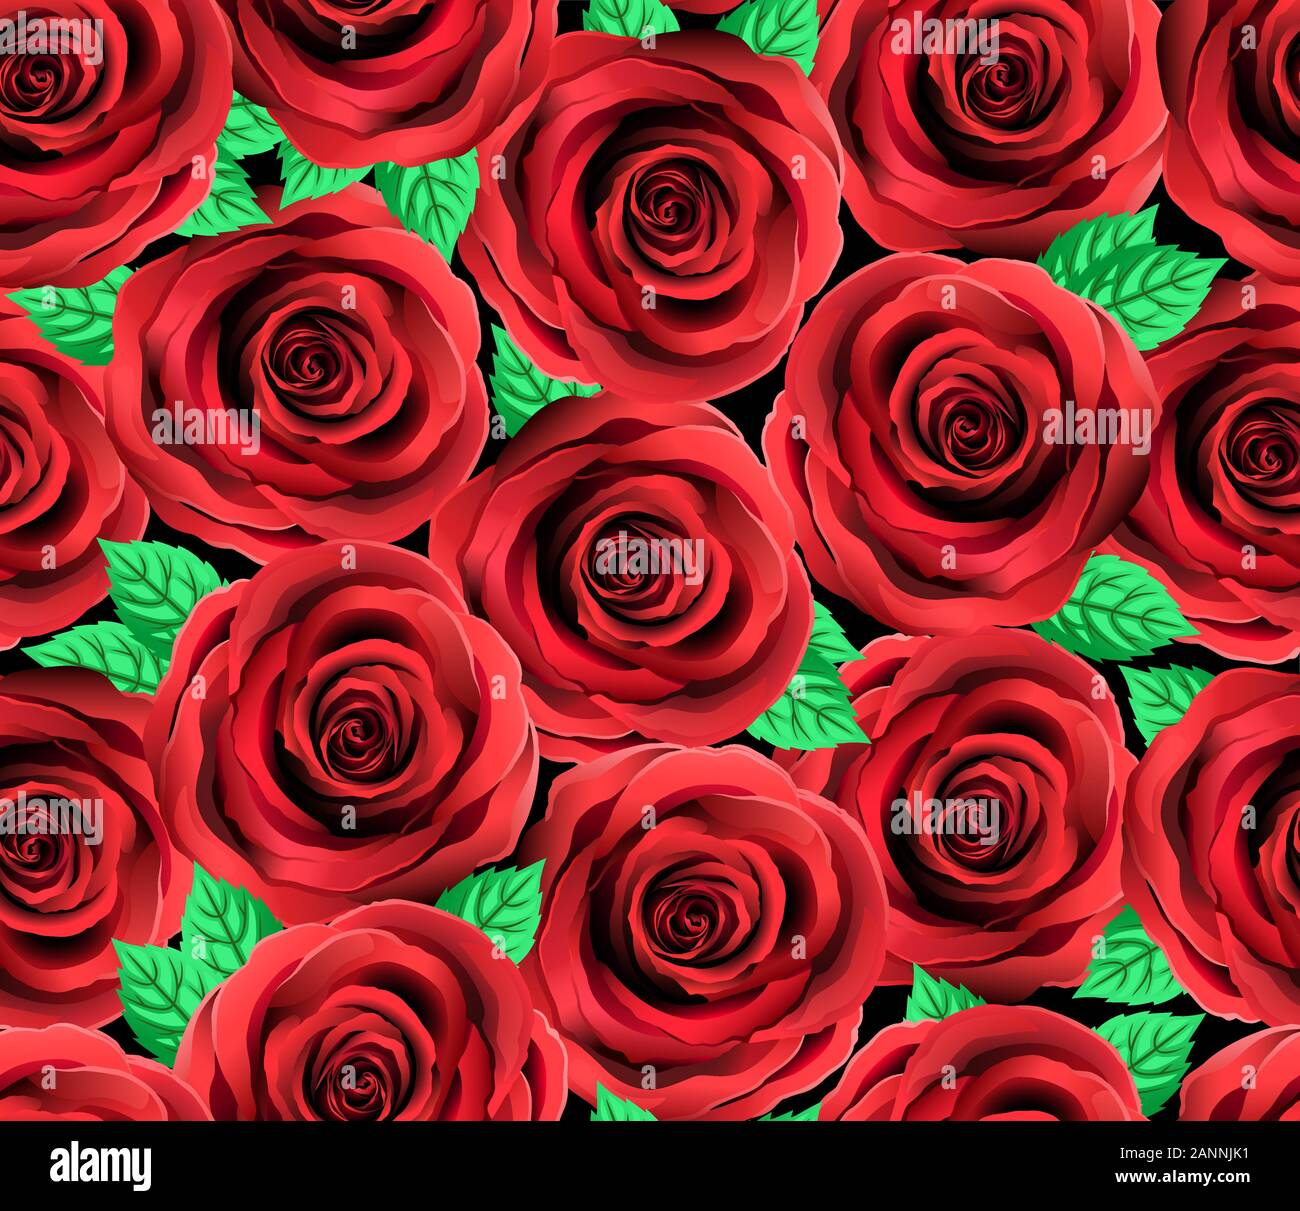 Red Rose Flower Vector Pattern Cite Floral Seamless Background Elegant Red And Black Roses Wallpaper Holiday Festive Wedding Decoration Old Fash Stock Vector Image Art Alamy